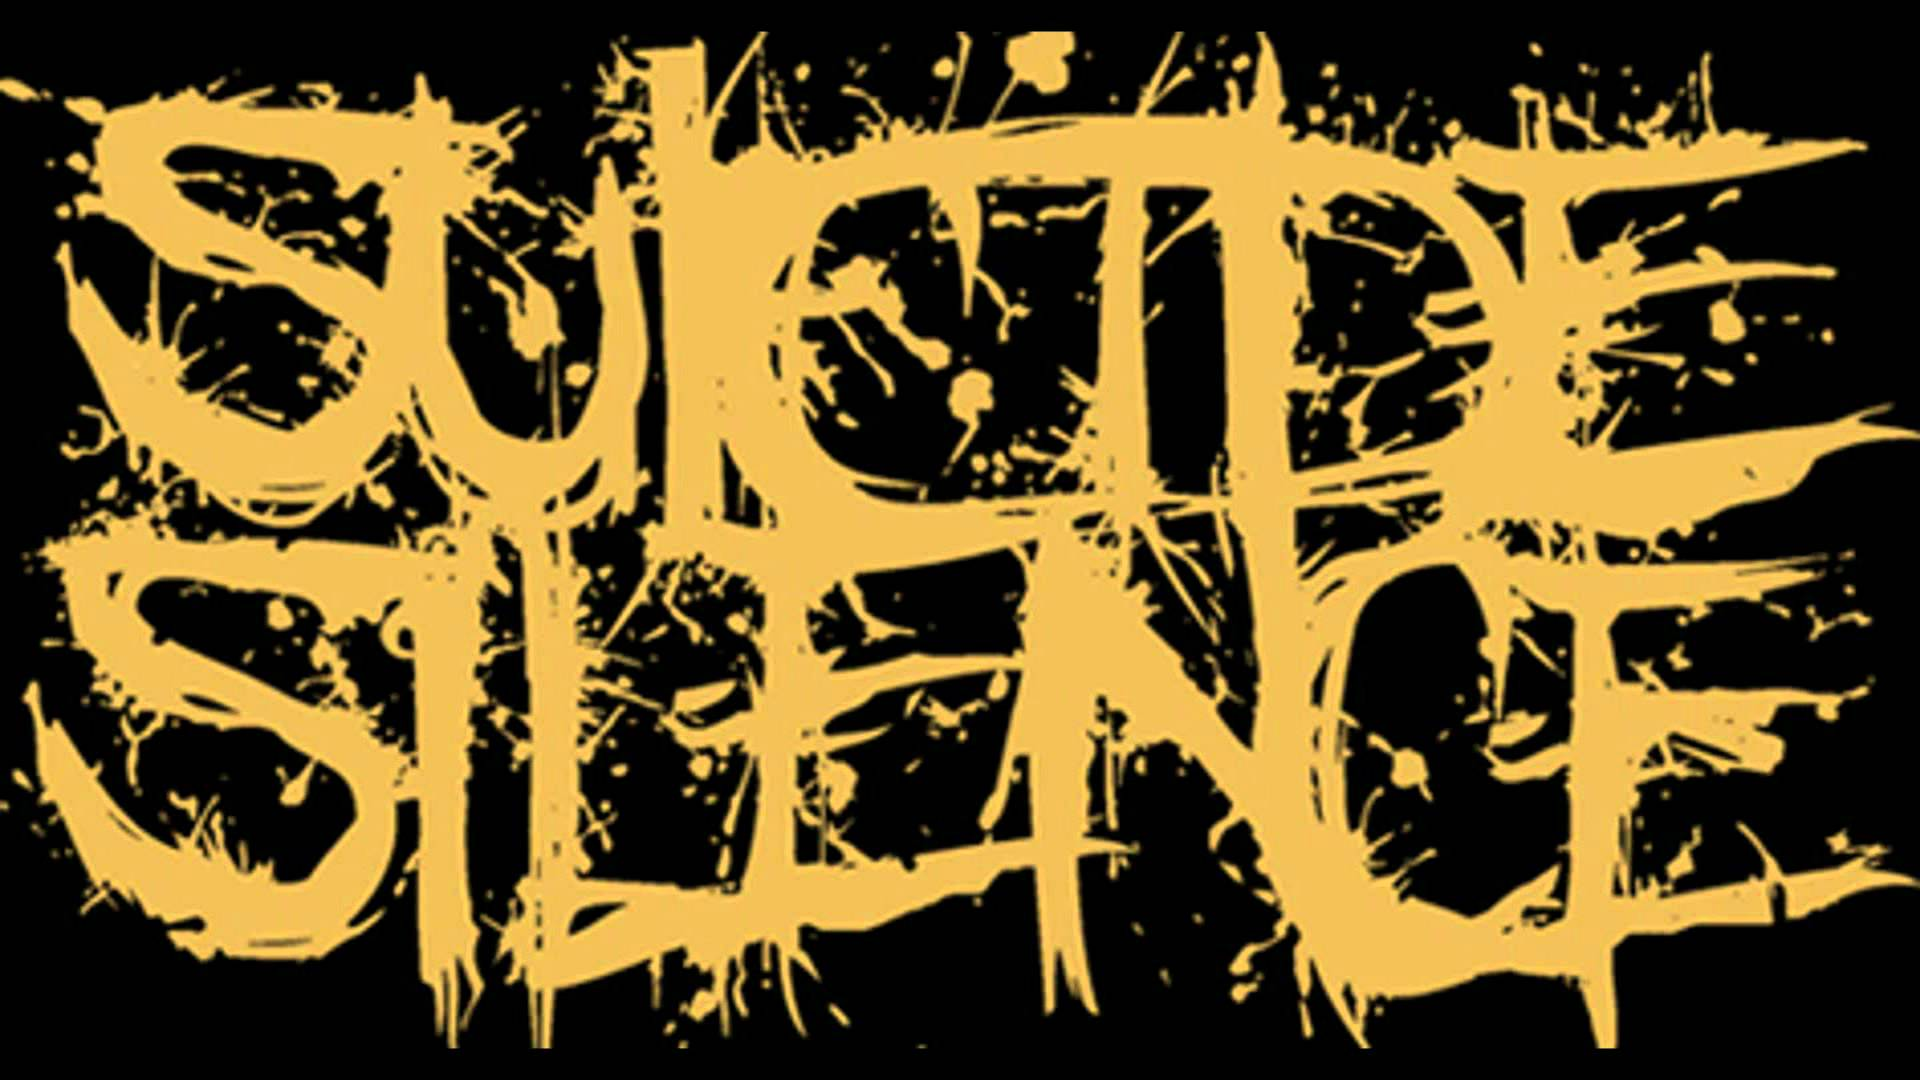 logo wallpapers hd suicide silence wallpaper cave rh wallpapercave com Falling in Reverse Logo Bring Me the Horizon Logo